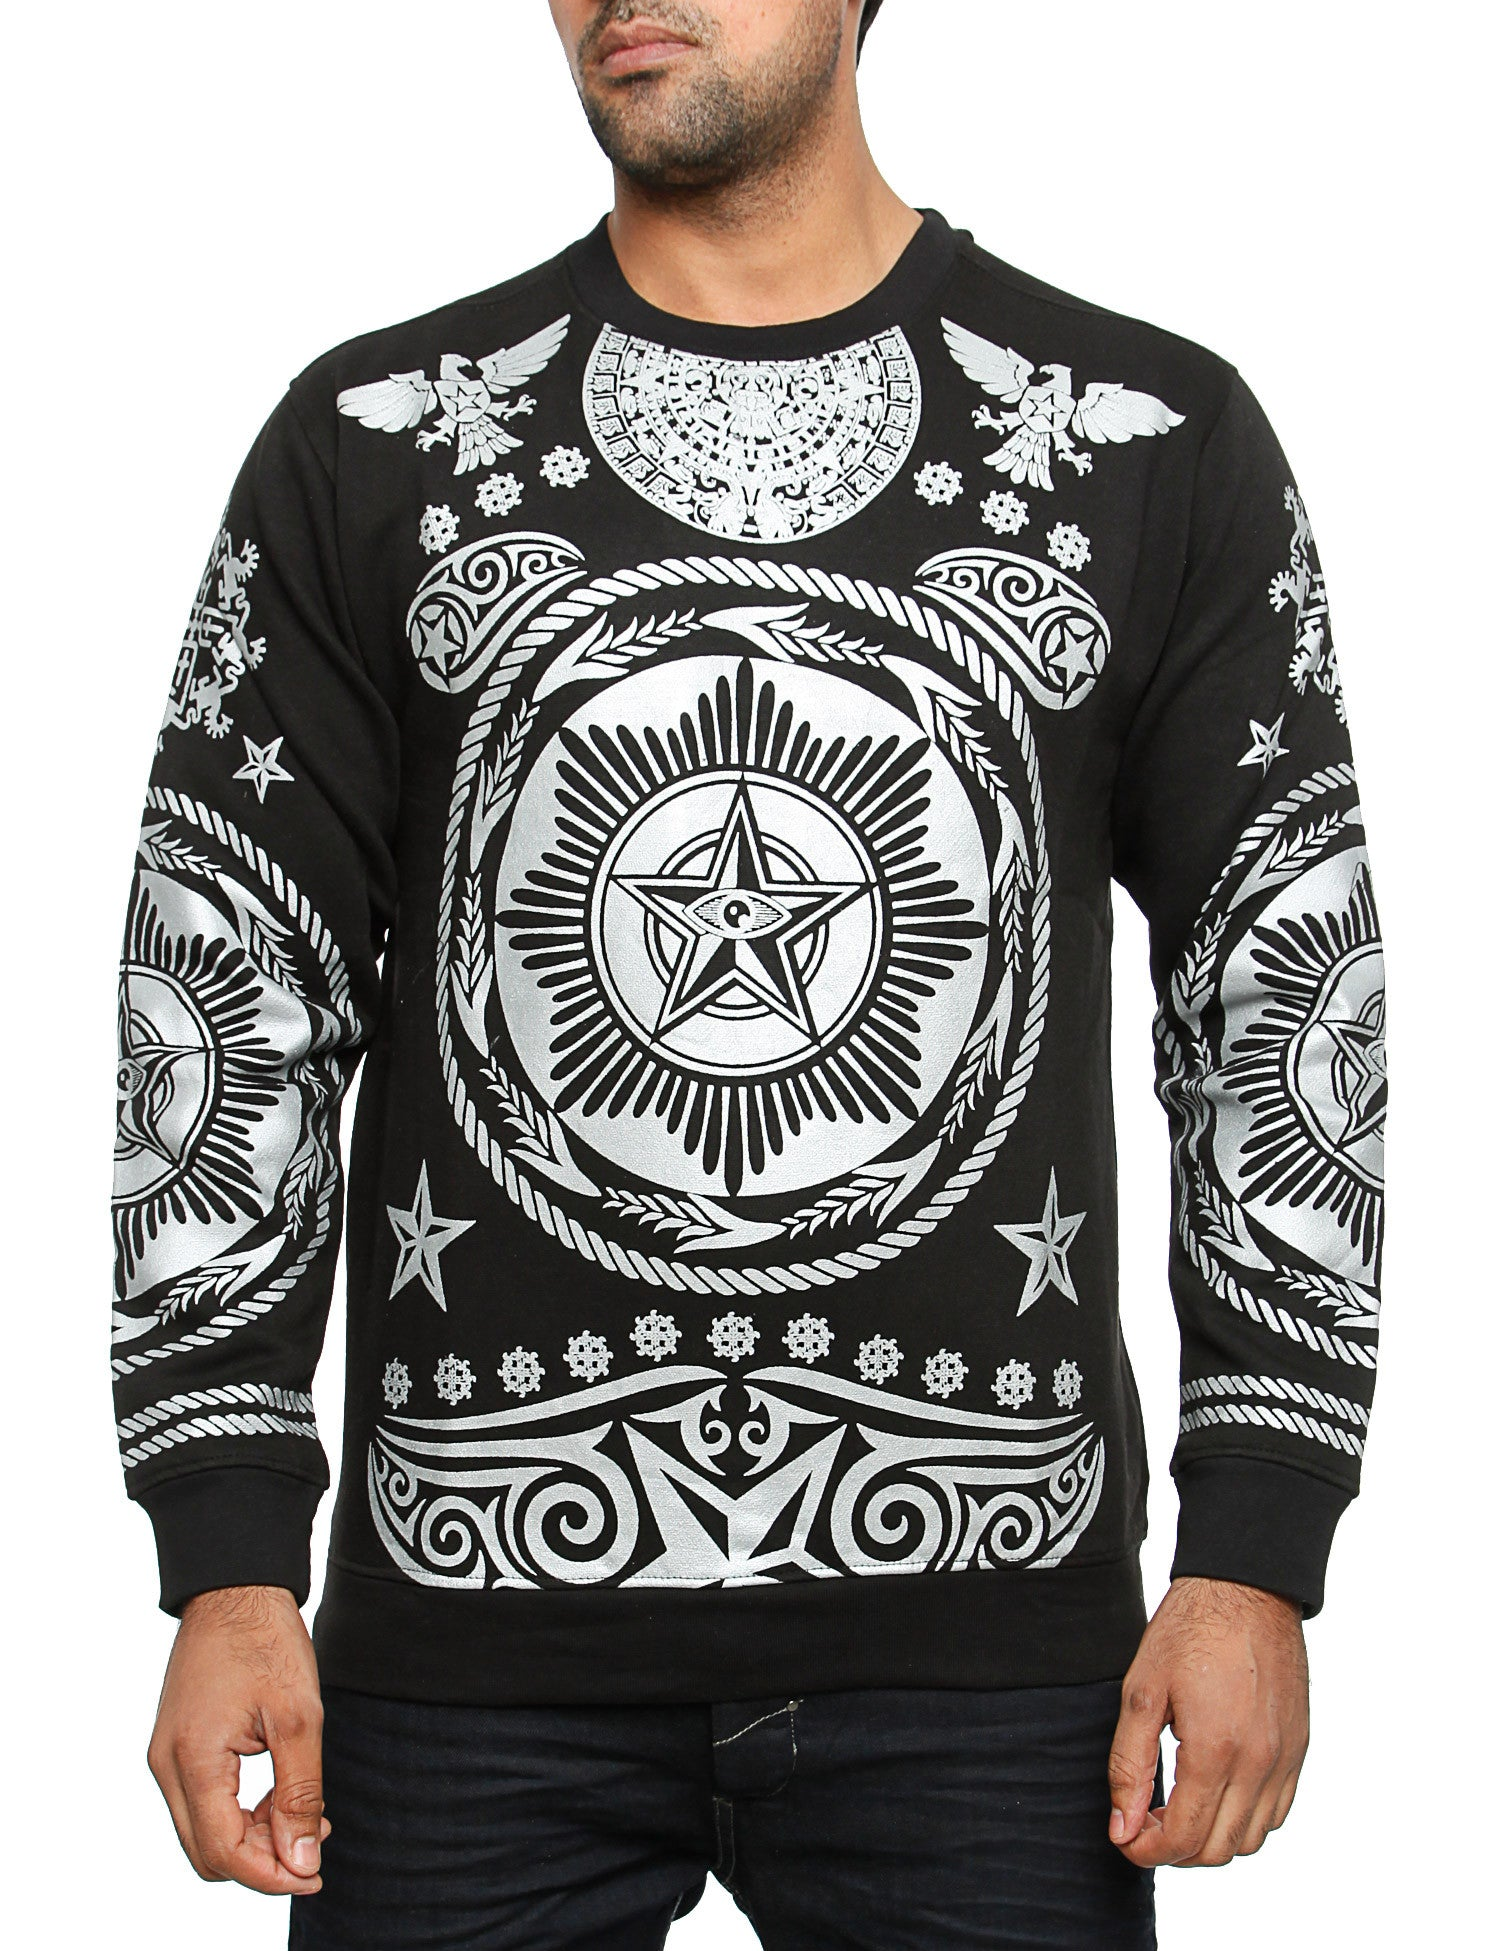 Imperious CS64 Hiero Crewneck Sweatshirt Silver